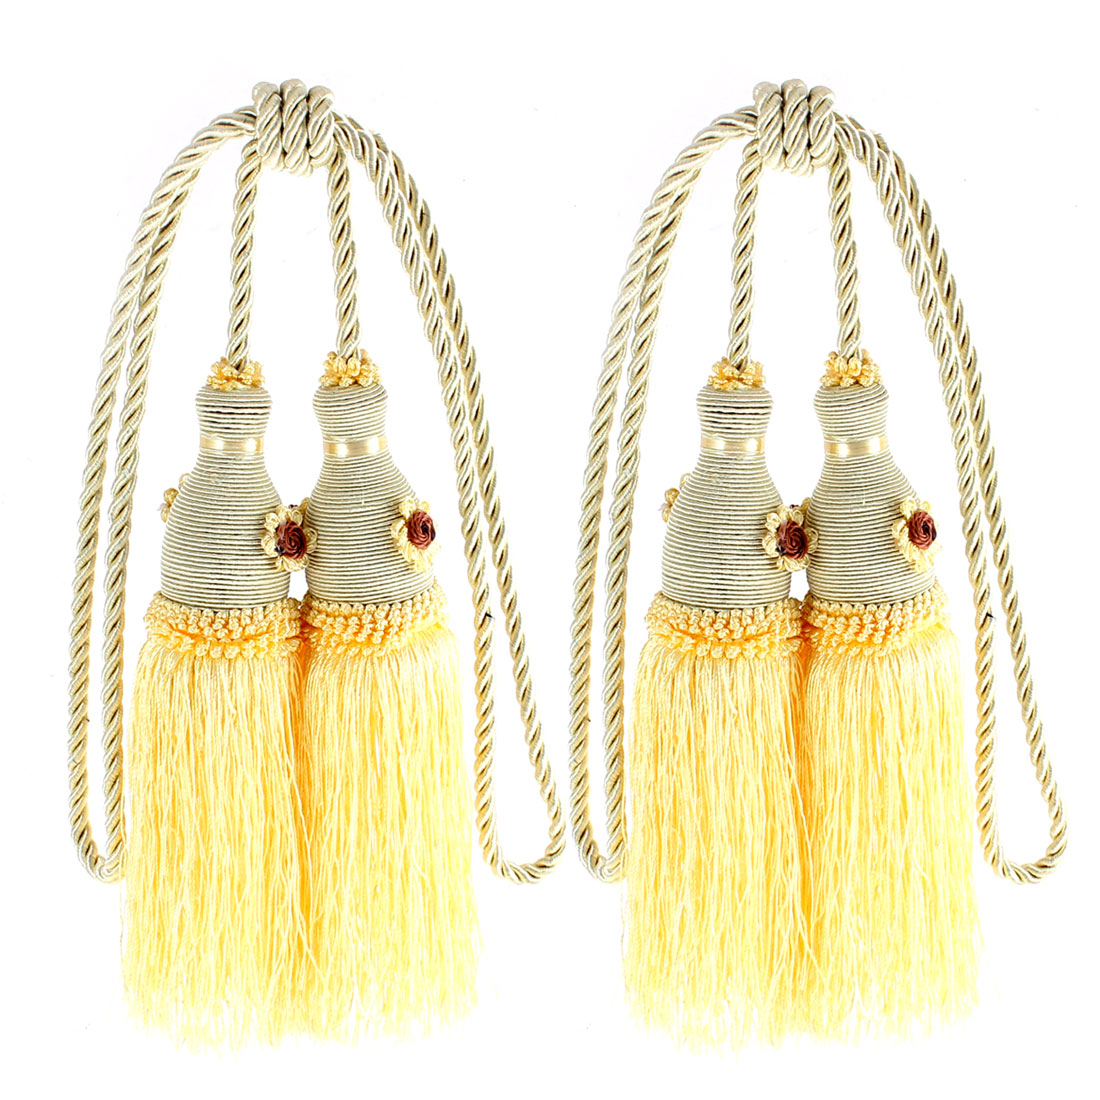 Curtain Window Double Tassel Tieback Hanging Cord 2Pcs